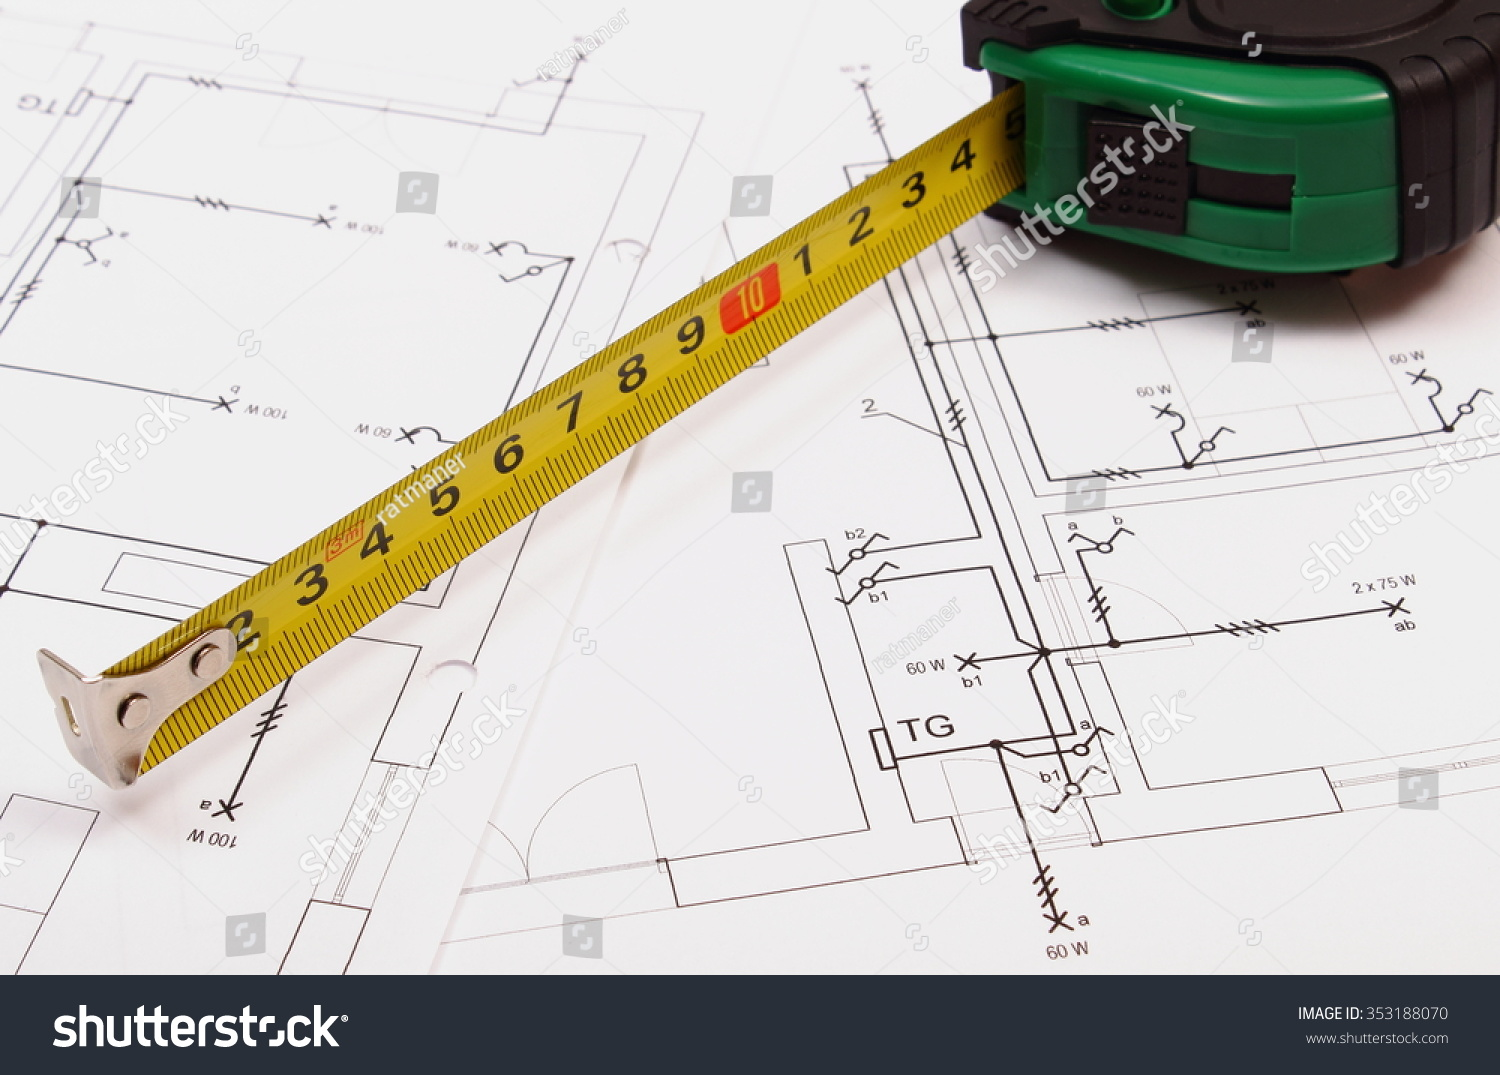 Tape measure on electrical construction drawing of house, work tool ...